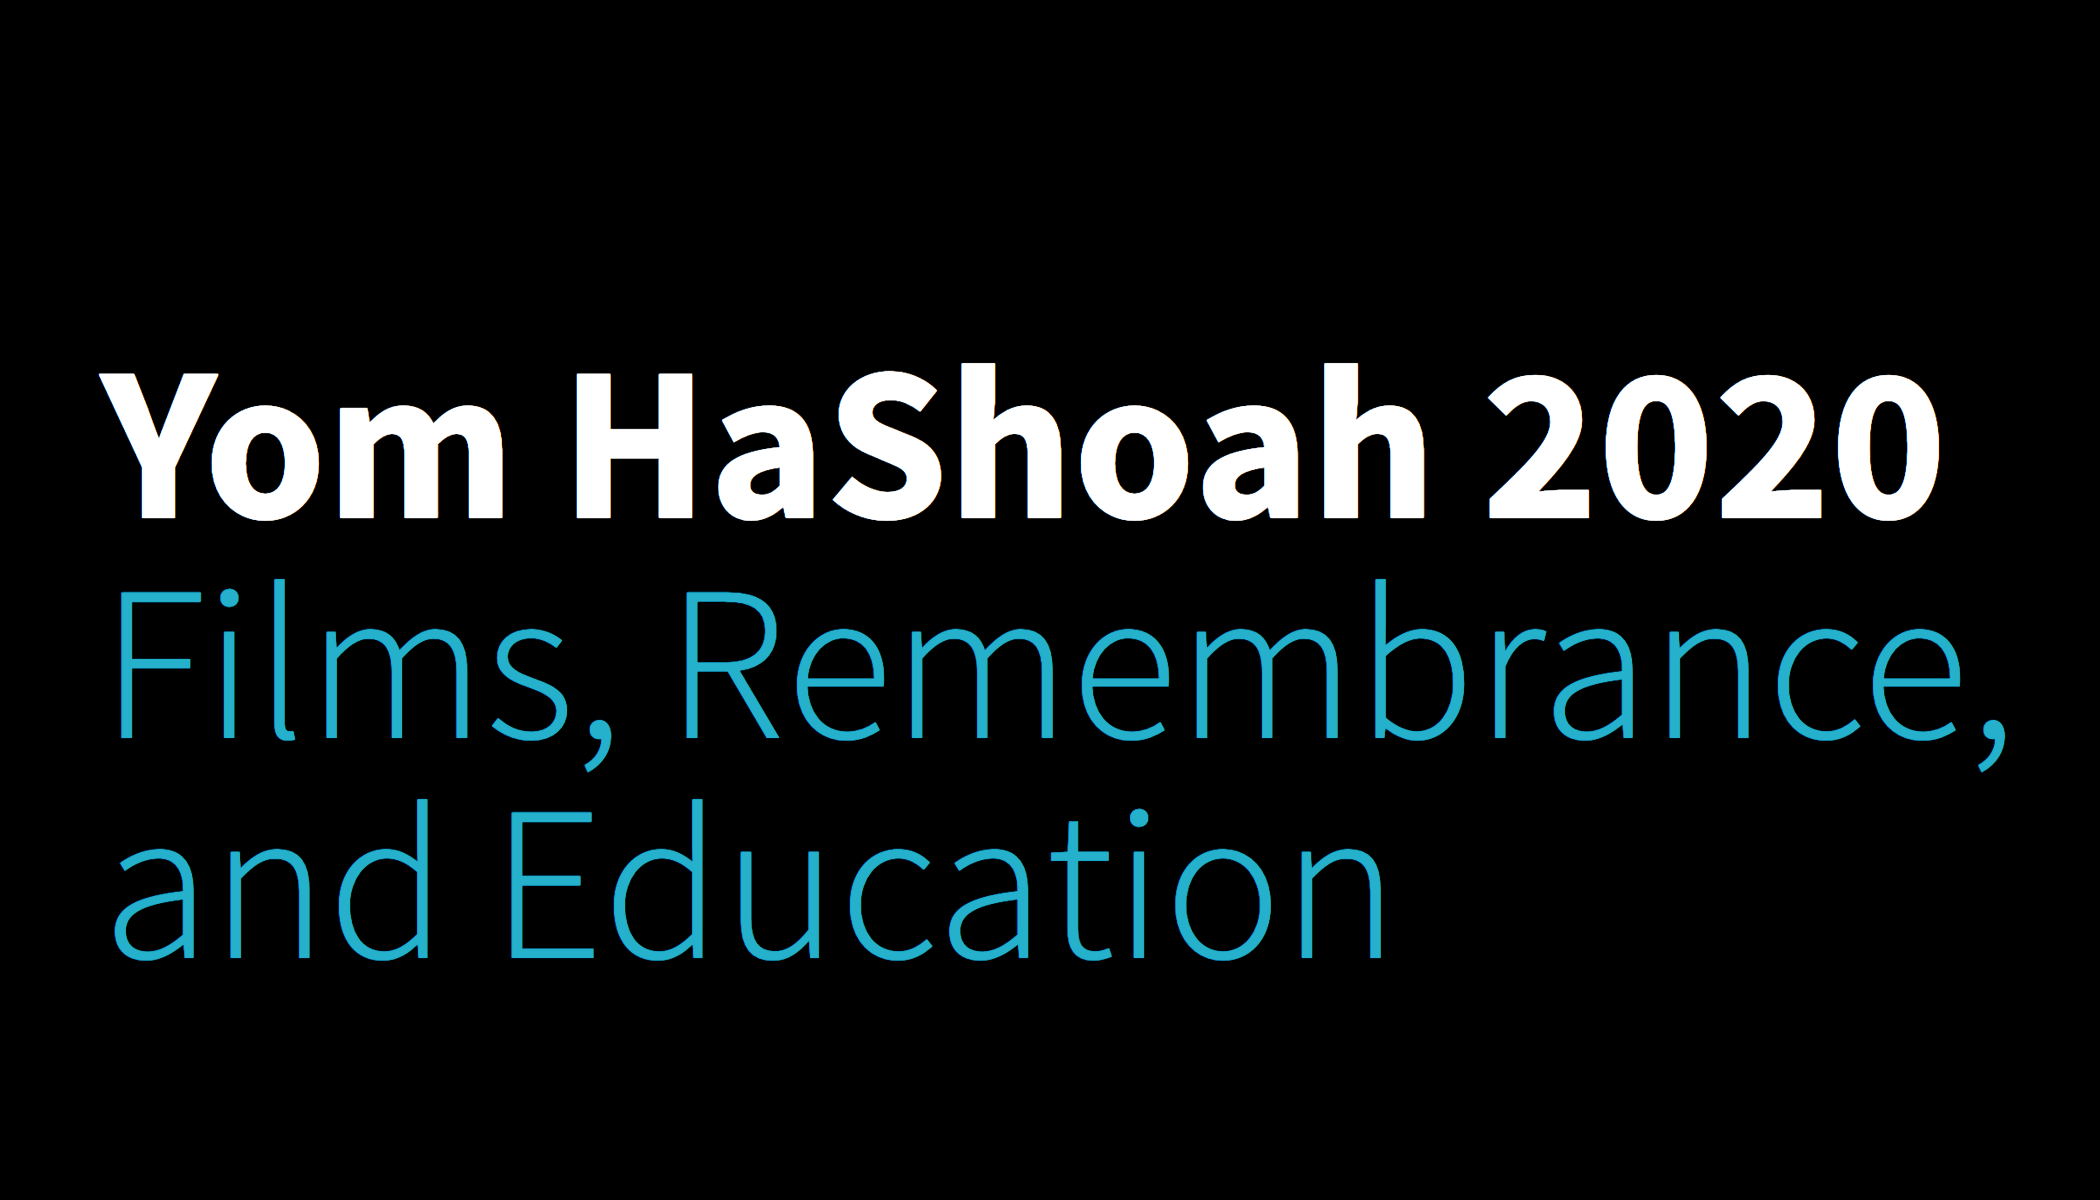 Yom HaShoah 2020 - Films, Remembrance, and Education